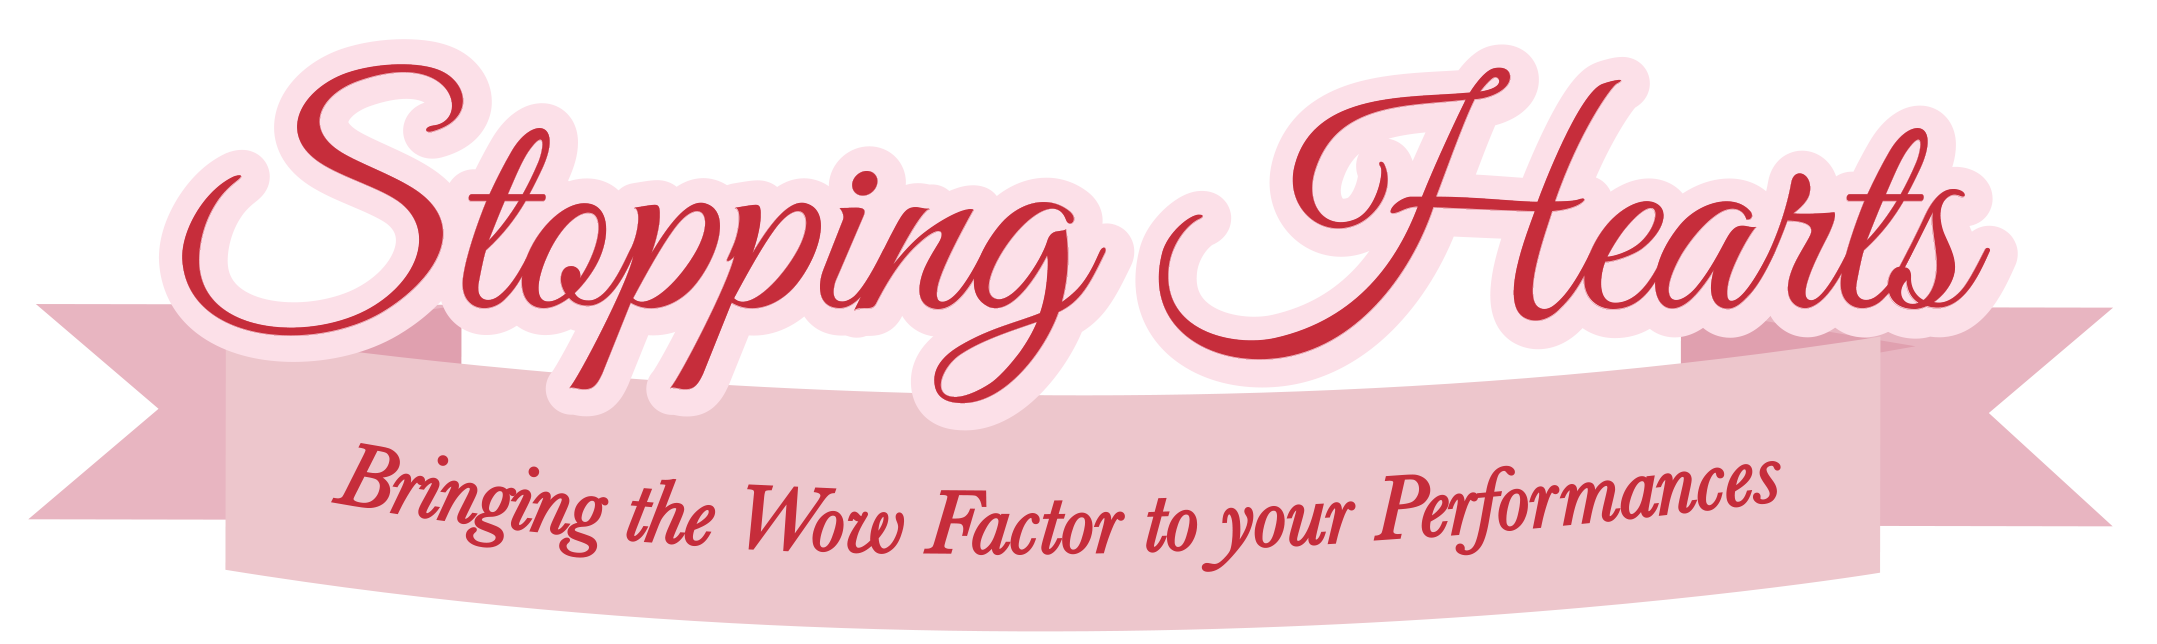 Stoppinghearts-banner.png